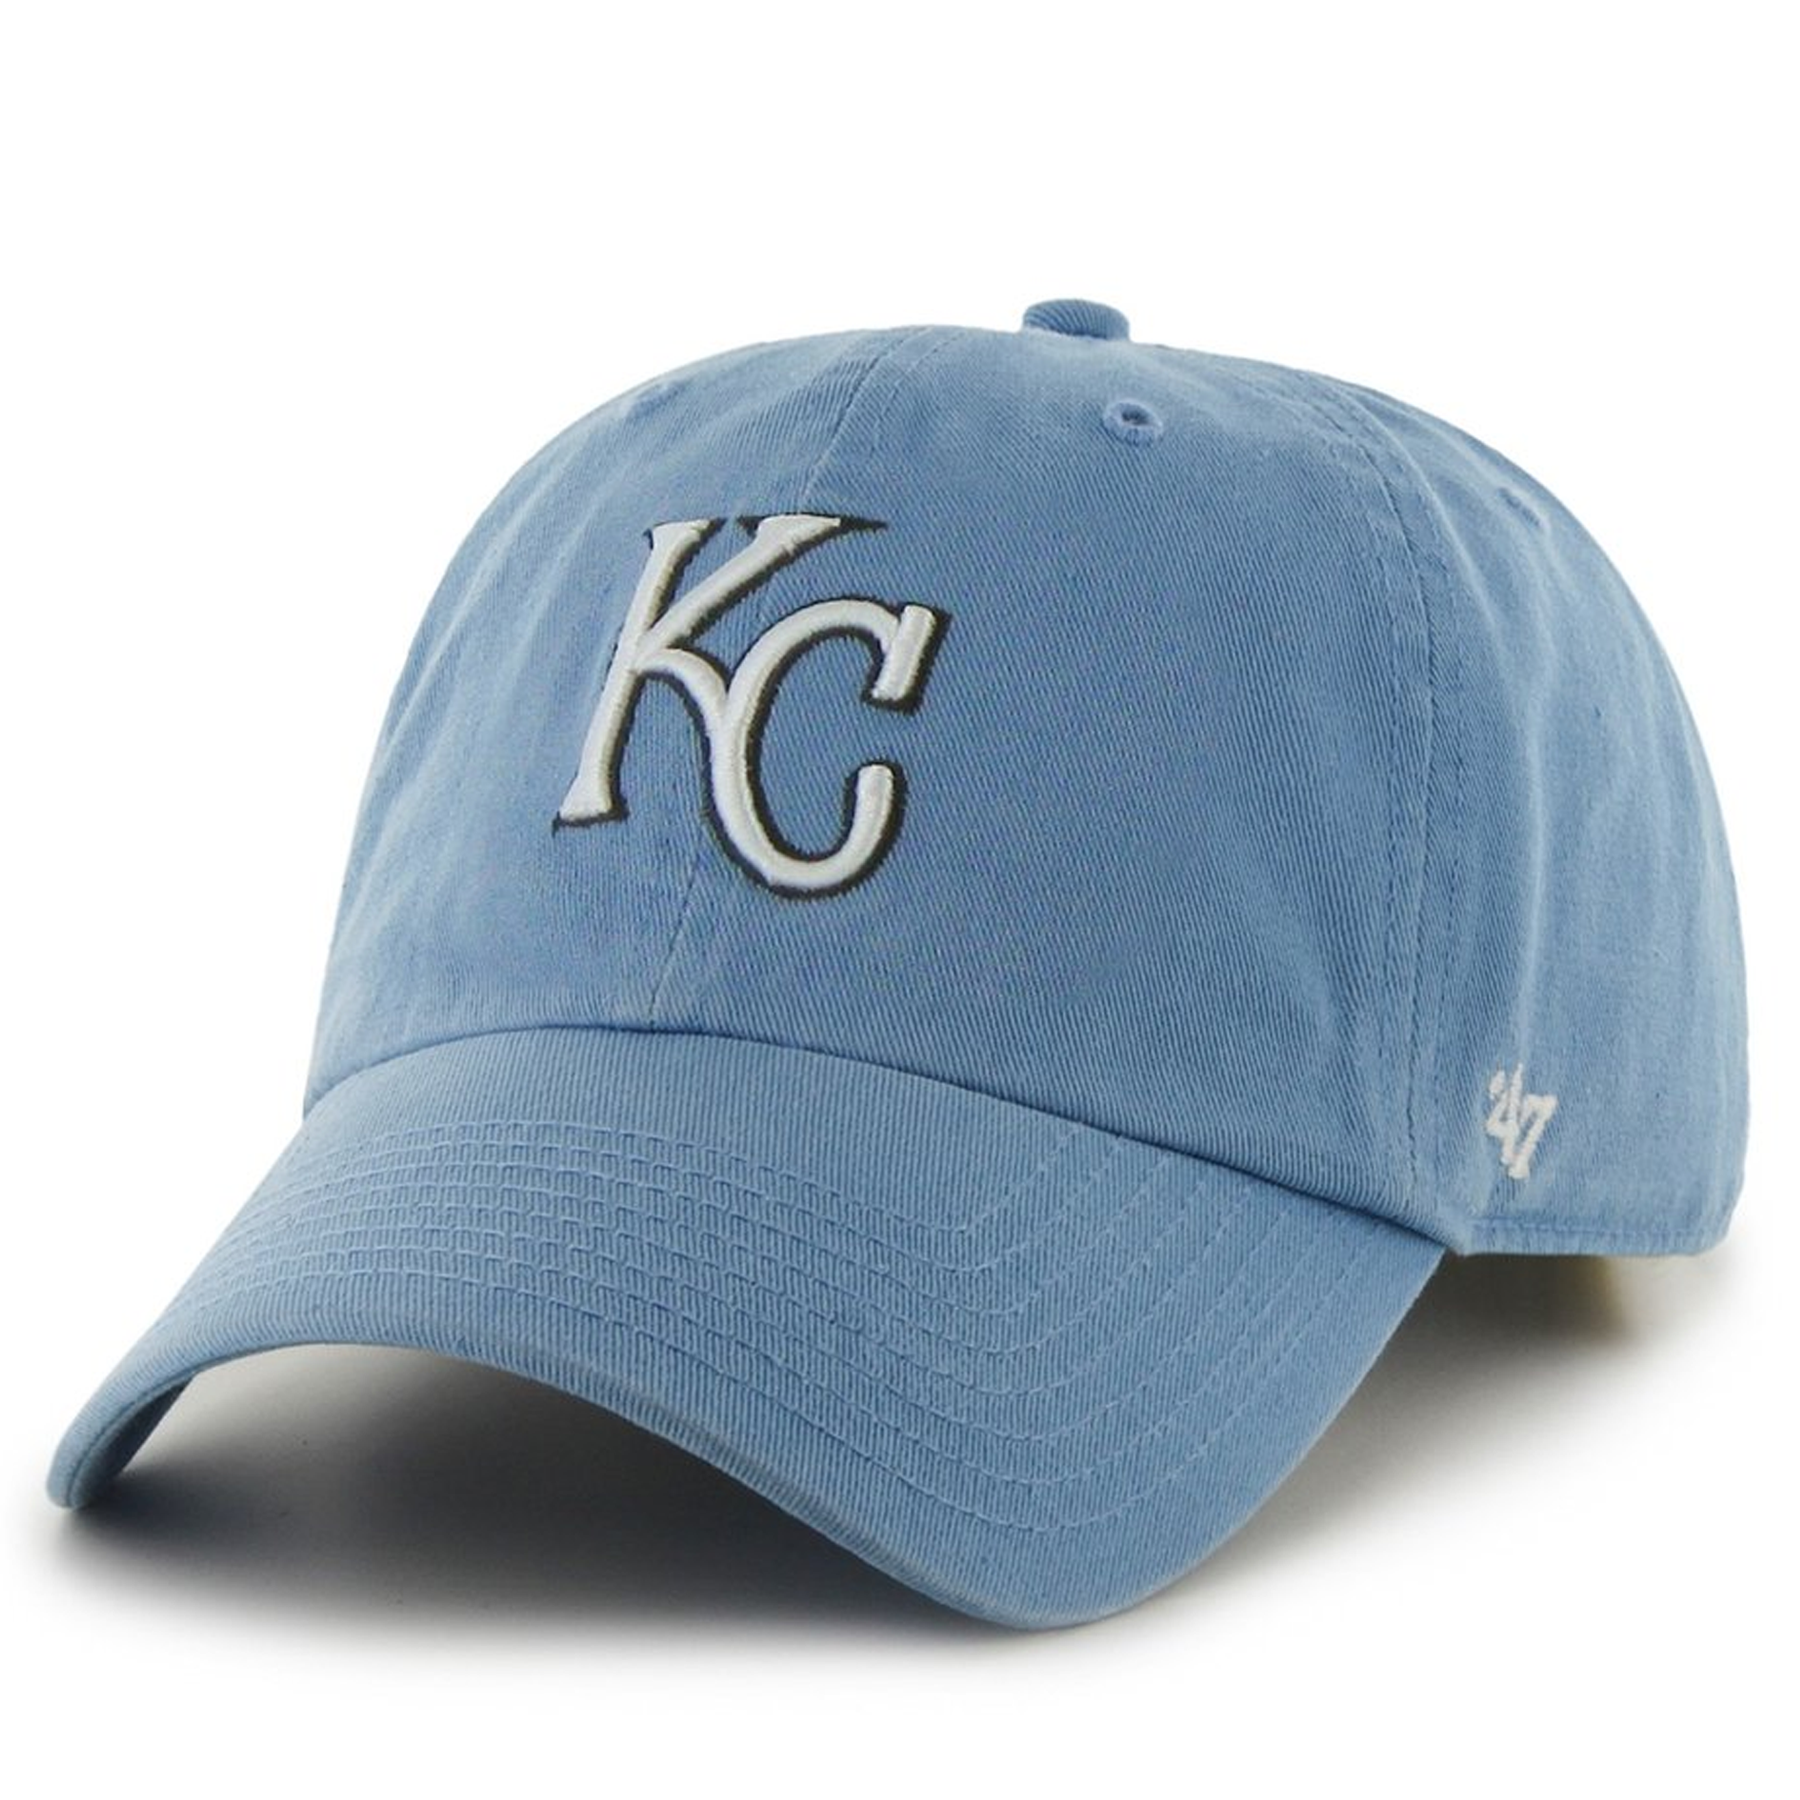 cheap for discount ecdd1 31ff1 on the front of the kansas city royals light blue adjustable dad hat is the  kc